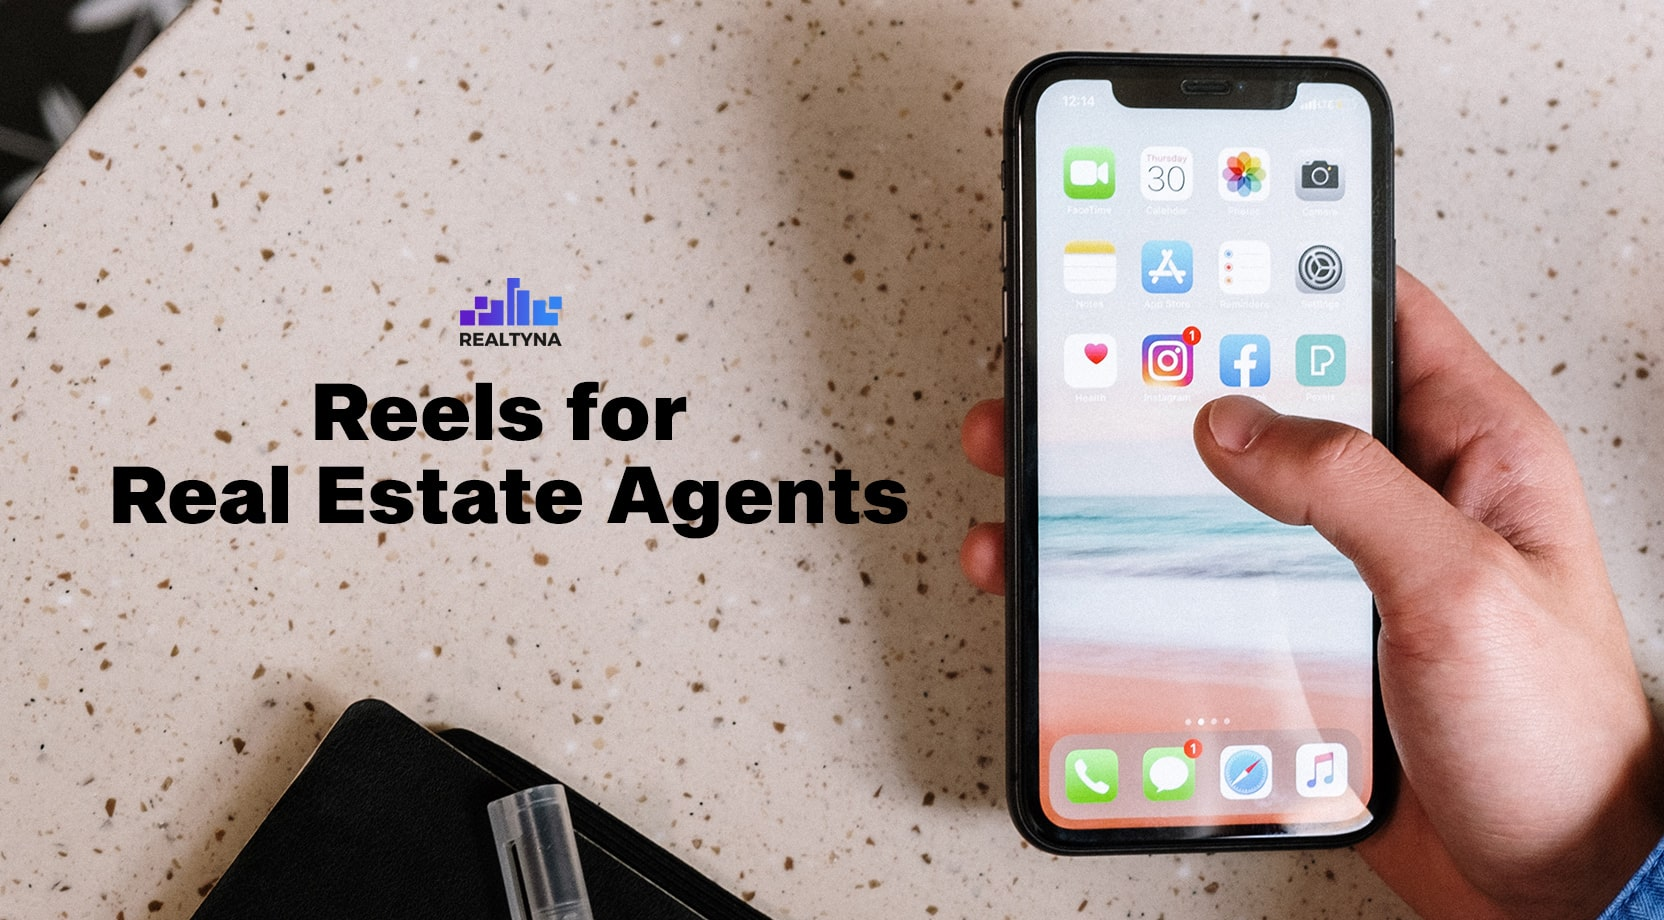 reels for real estate agents